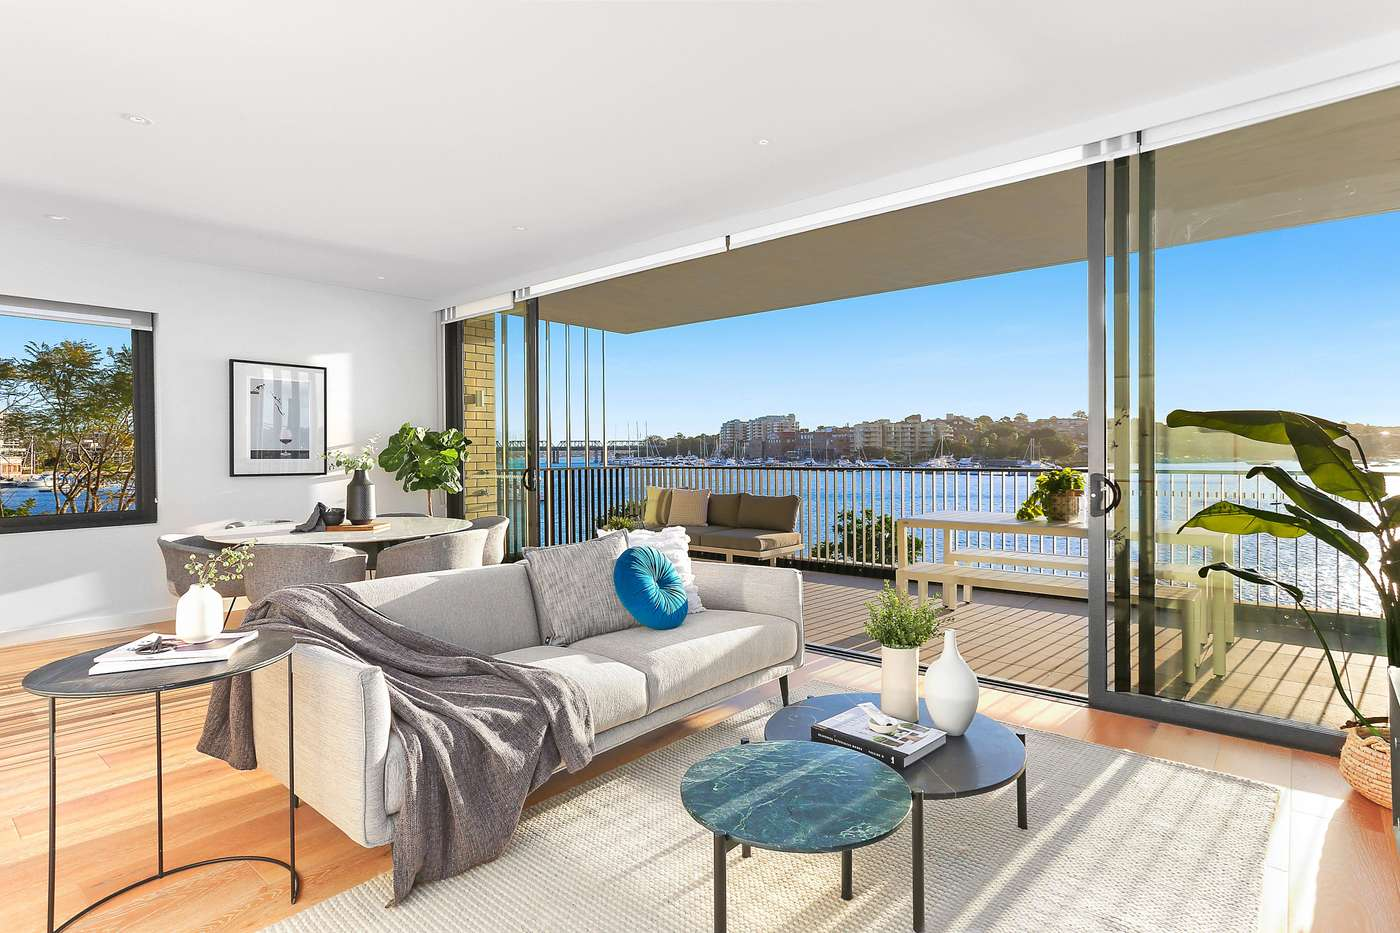 Main view of Homely apartment listing, 102/114 Elliott Street, Balmain, NSW 2041